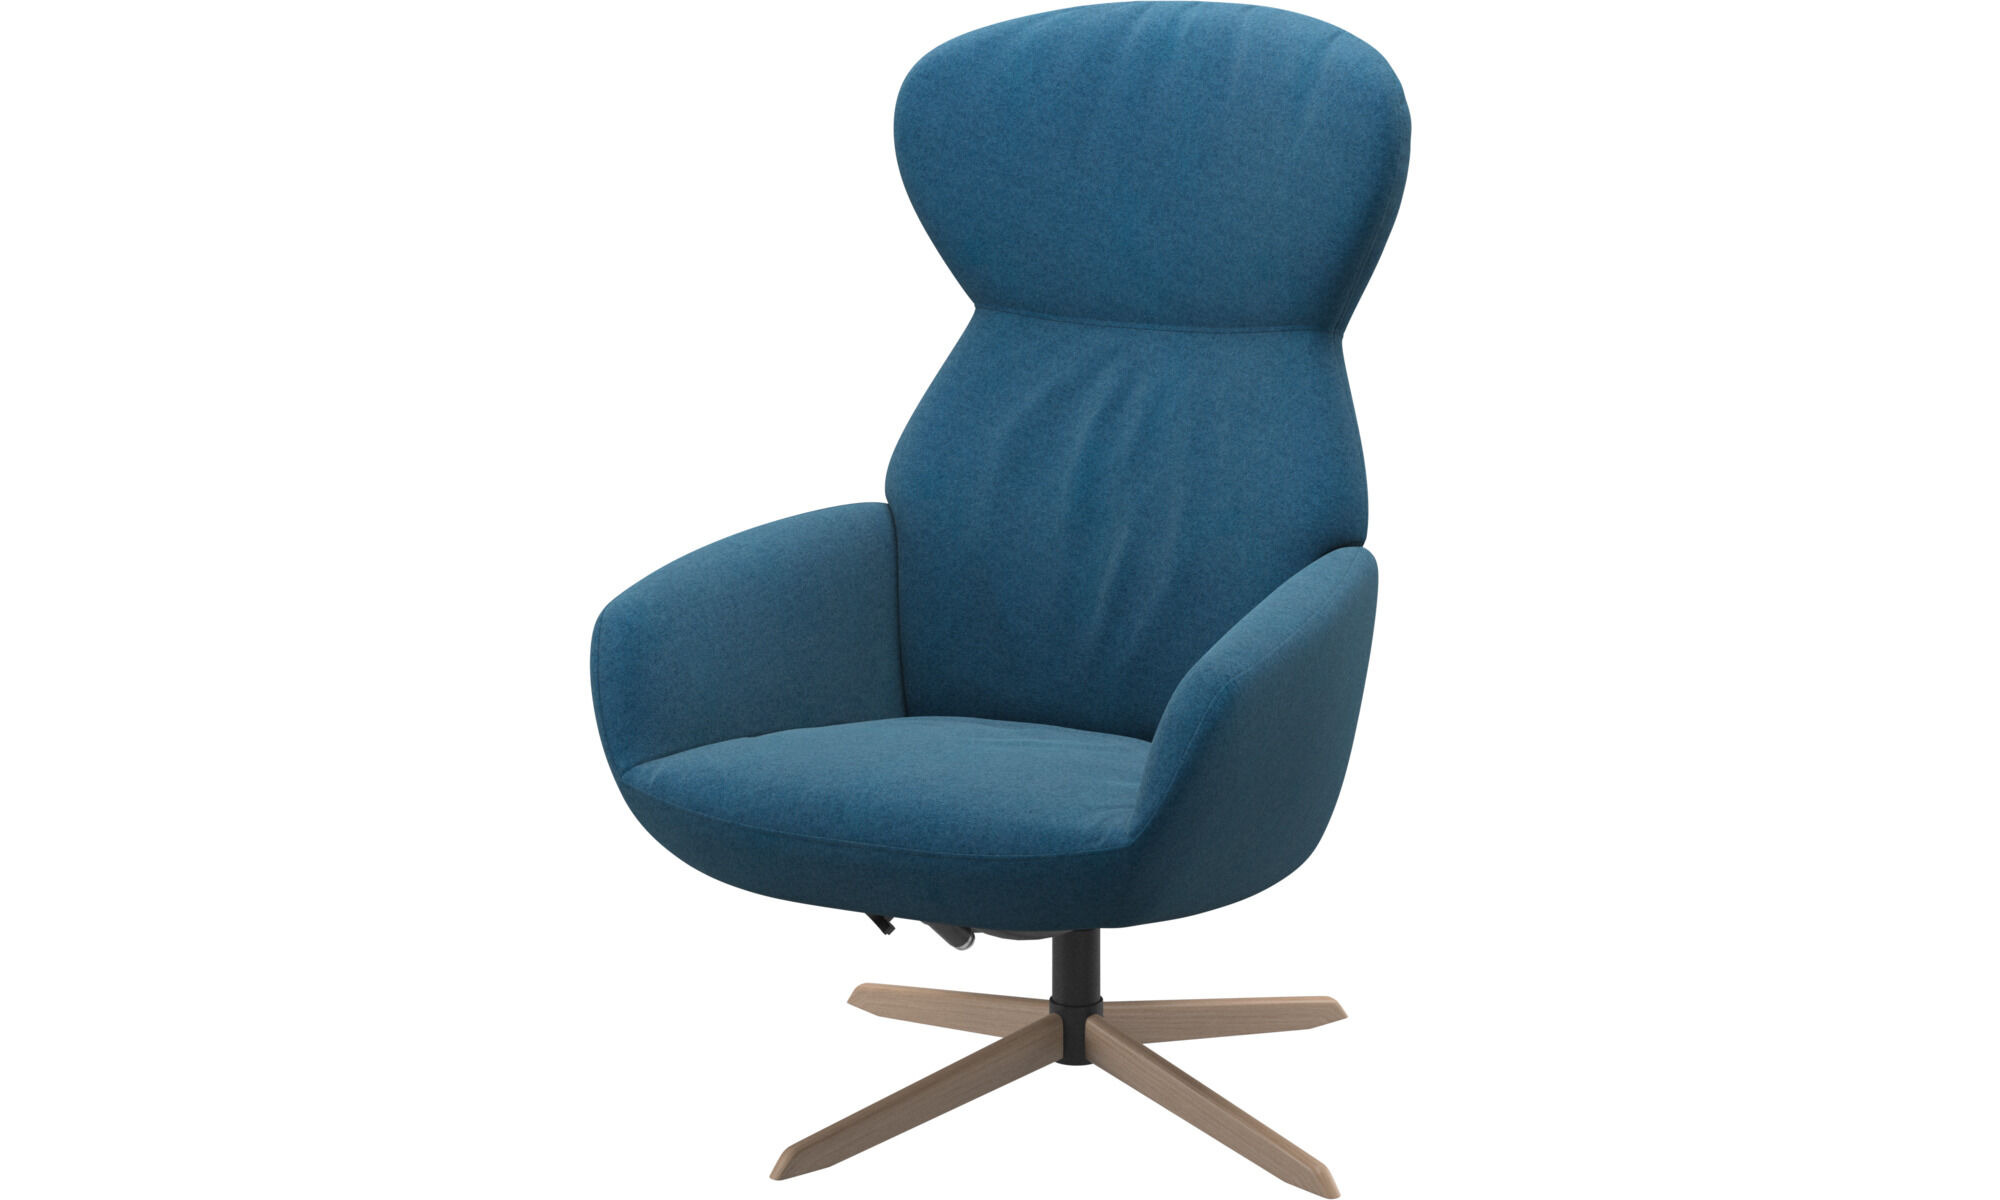 Armchairs   Athena Chair With Reclining Back Function And Swivel Base    Blue   Fabric